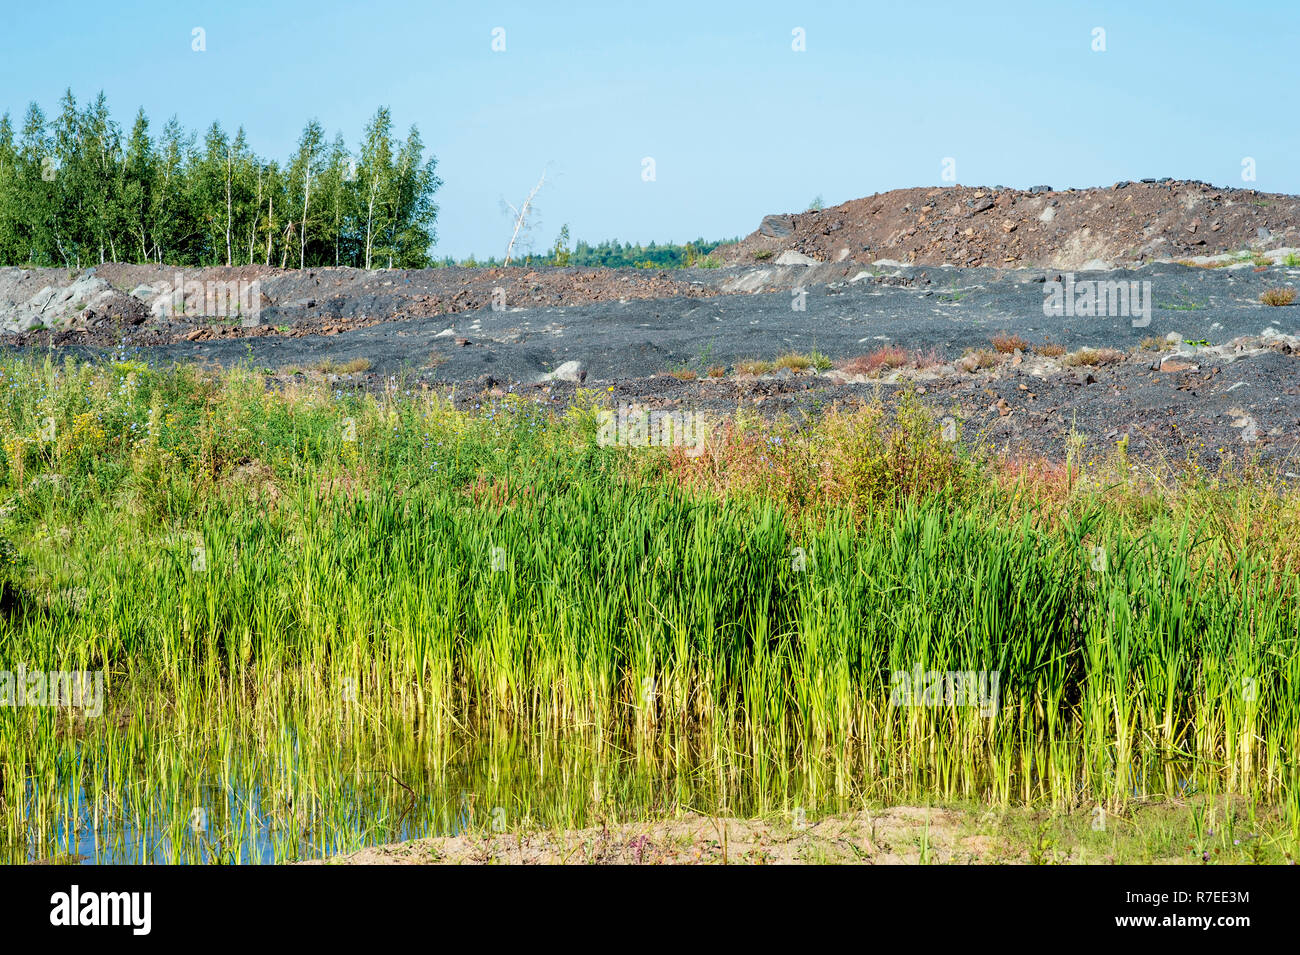 Desert landscape after mining activities. The destruction of forests due to the overburden dump pit. - Stock Image